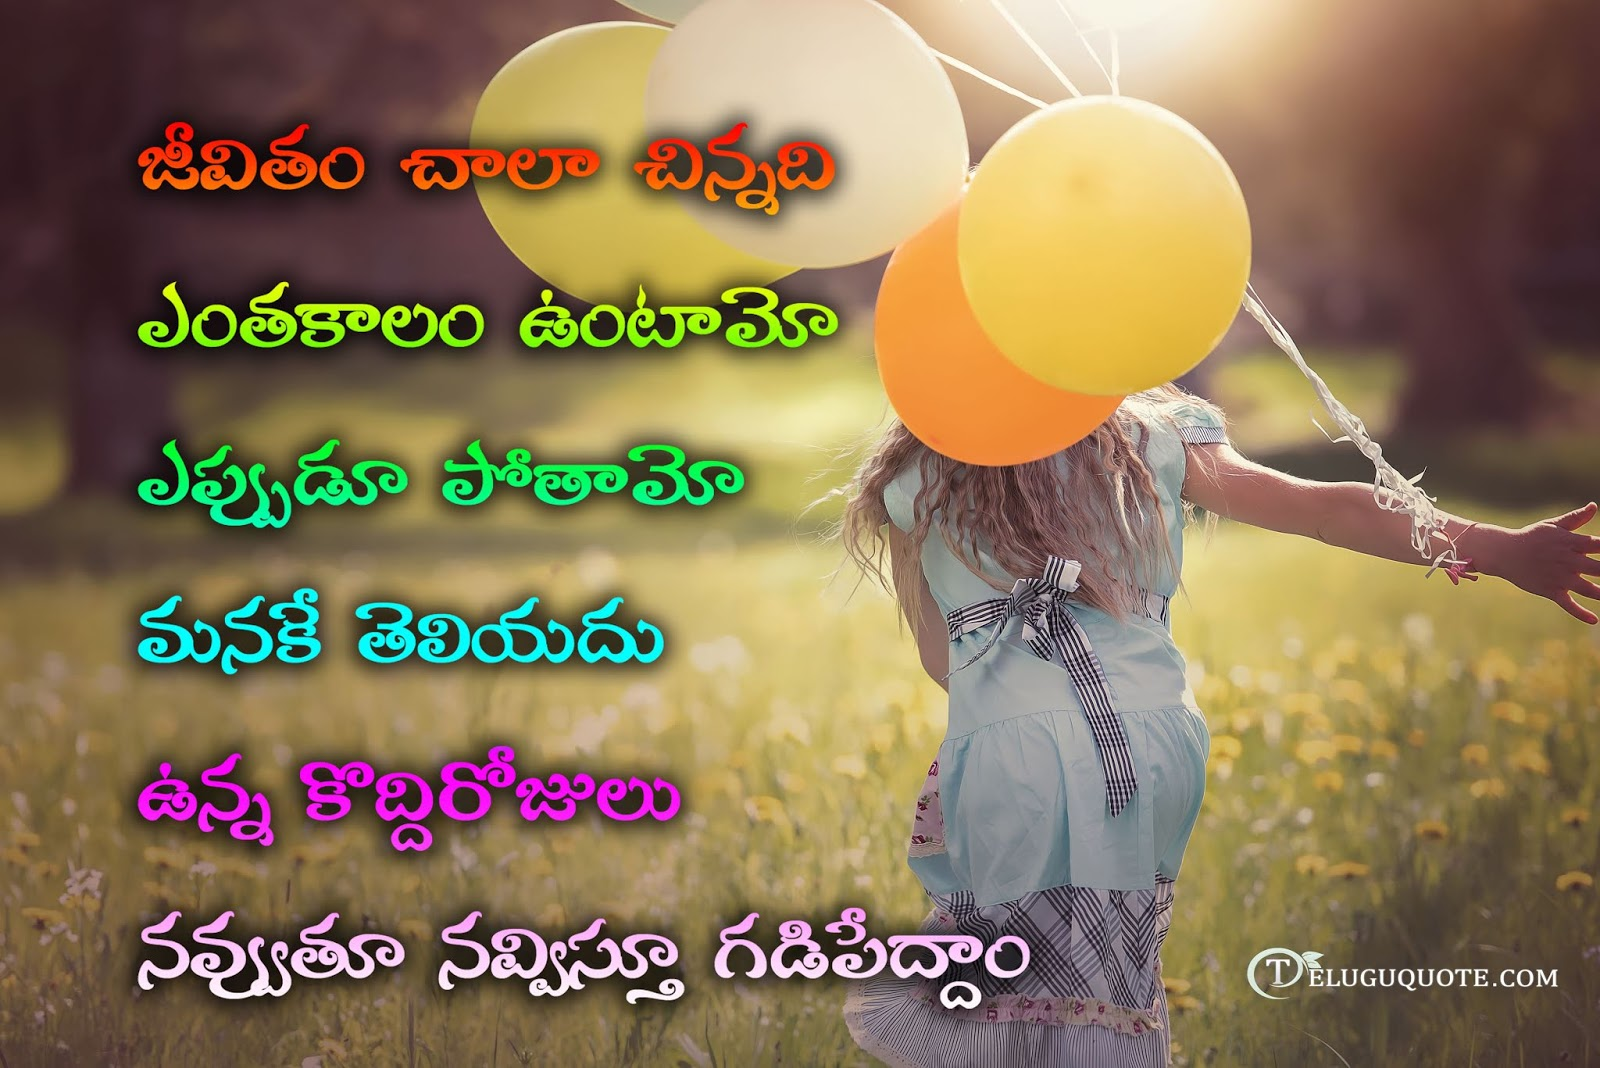 Happy Life Quotes Telugu Telugu Quotes